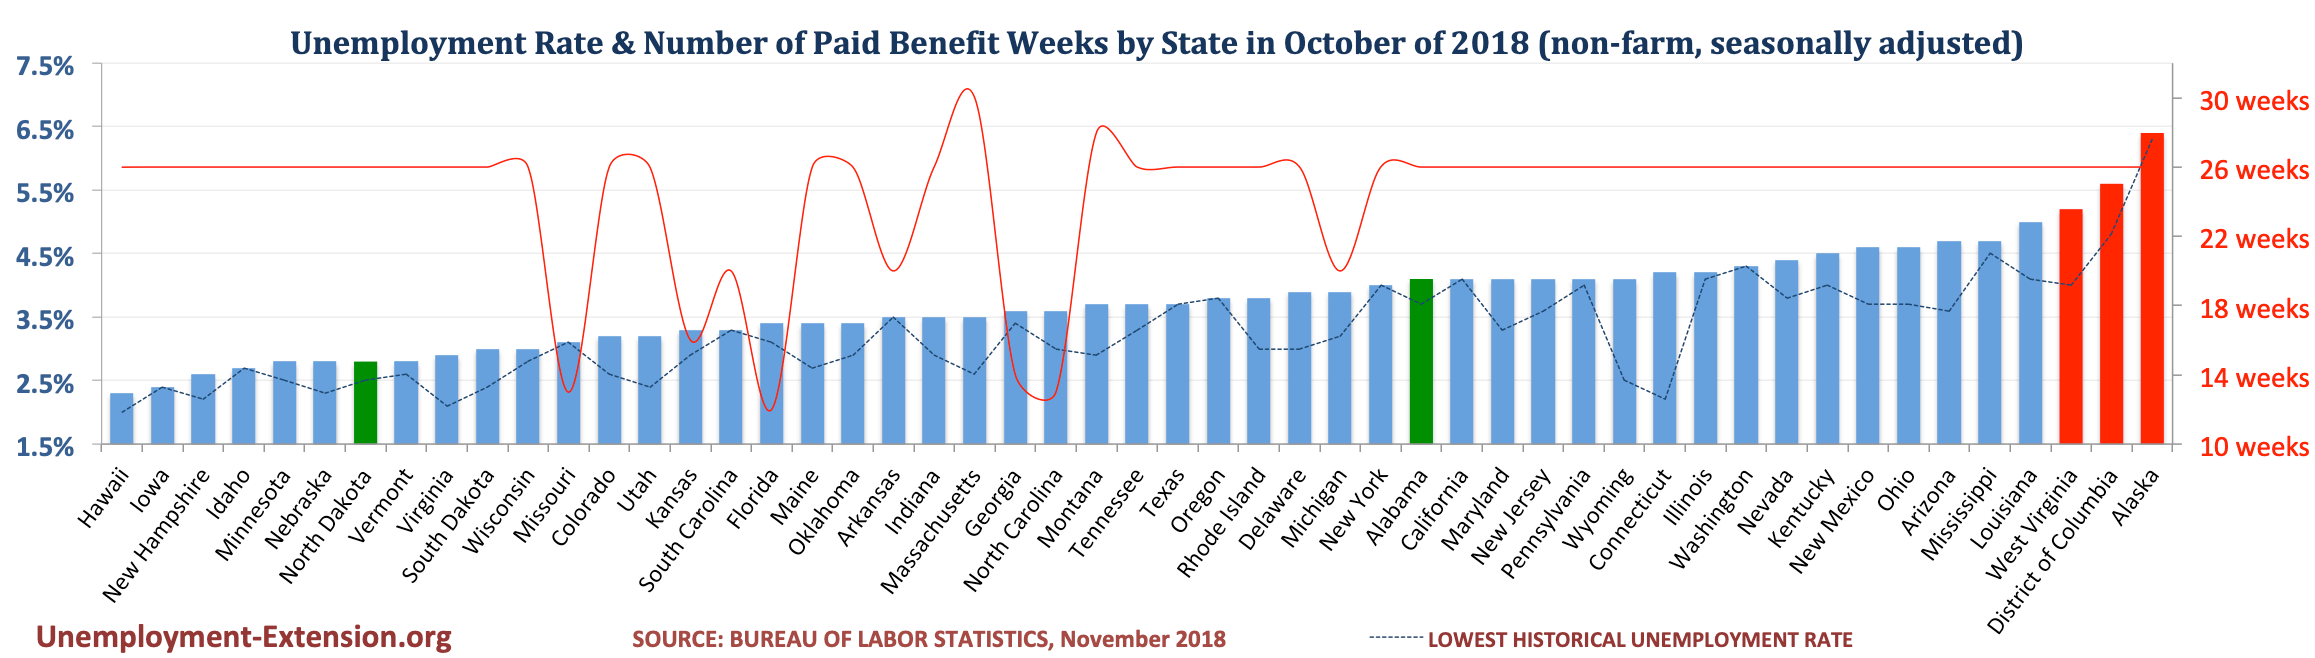 Unemployment Rate and Number of Paid Unemployment Benefit weeks by State (non-farm, seasonally adjusted) in October of 2018